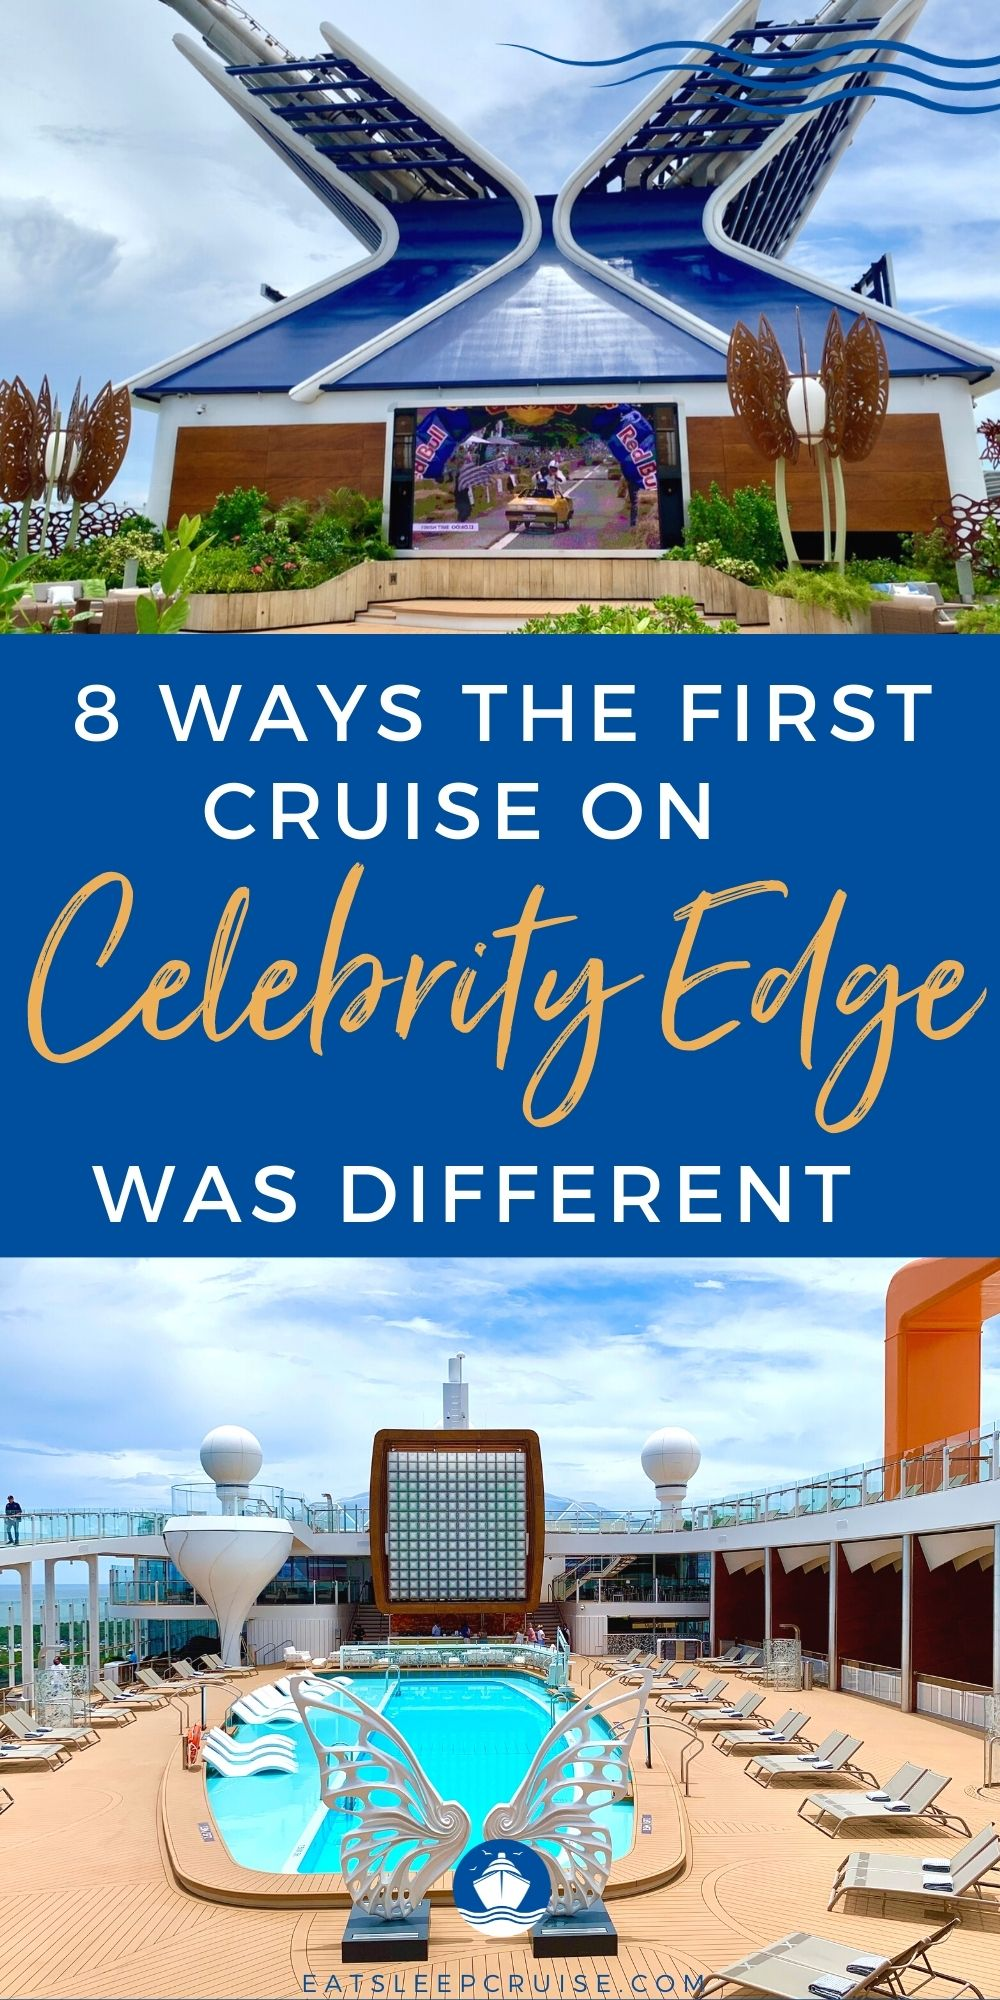 8 Ways The First Cruise On Celebrity Edge Was Different